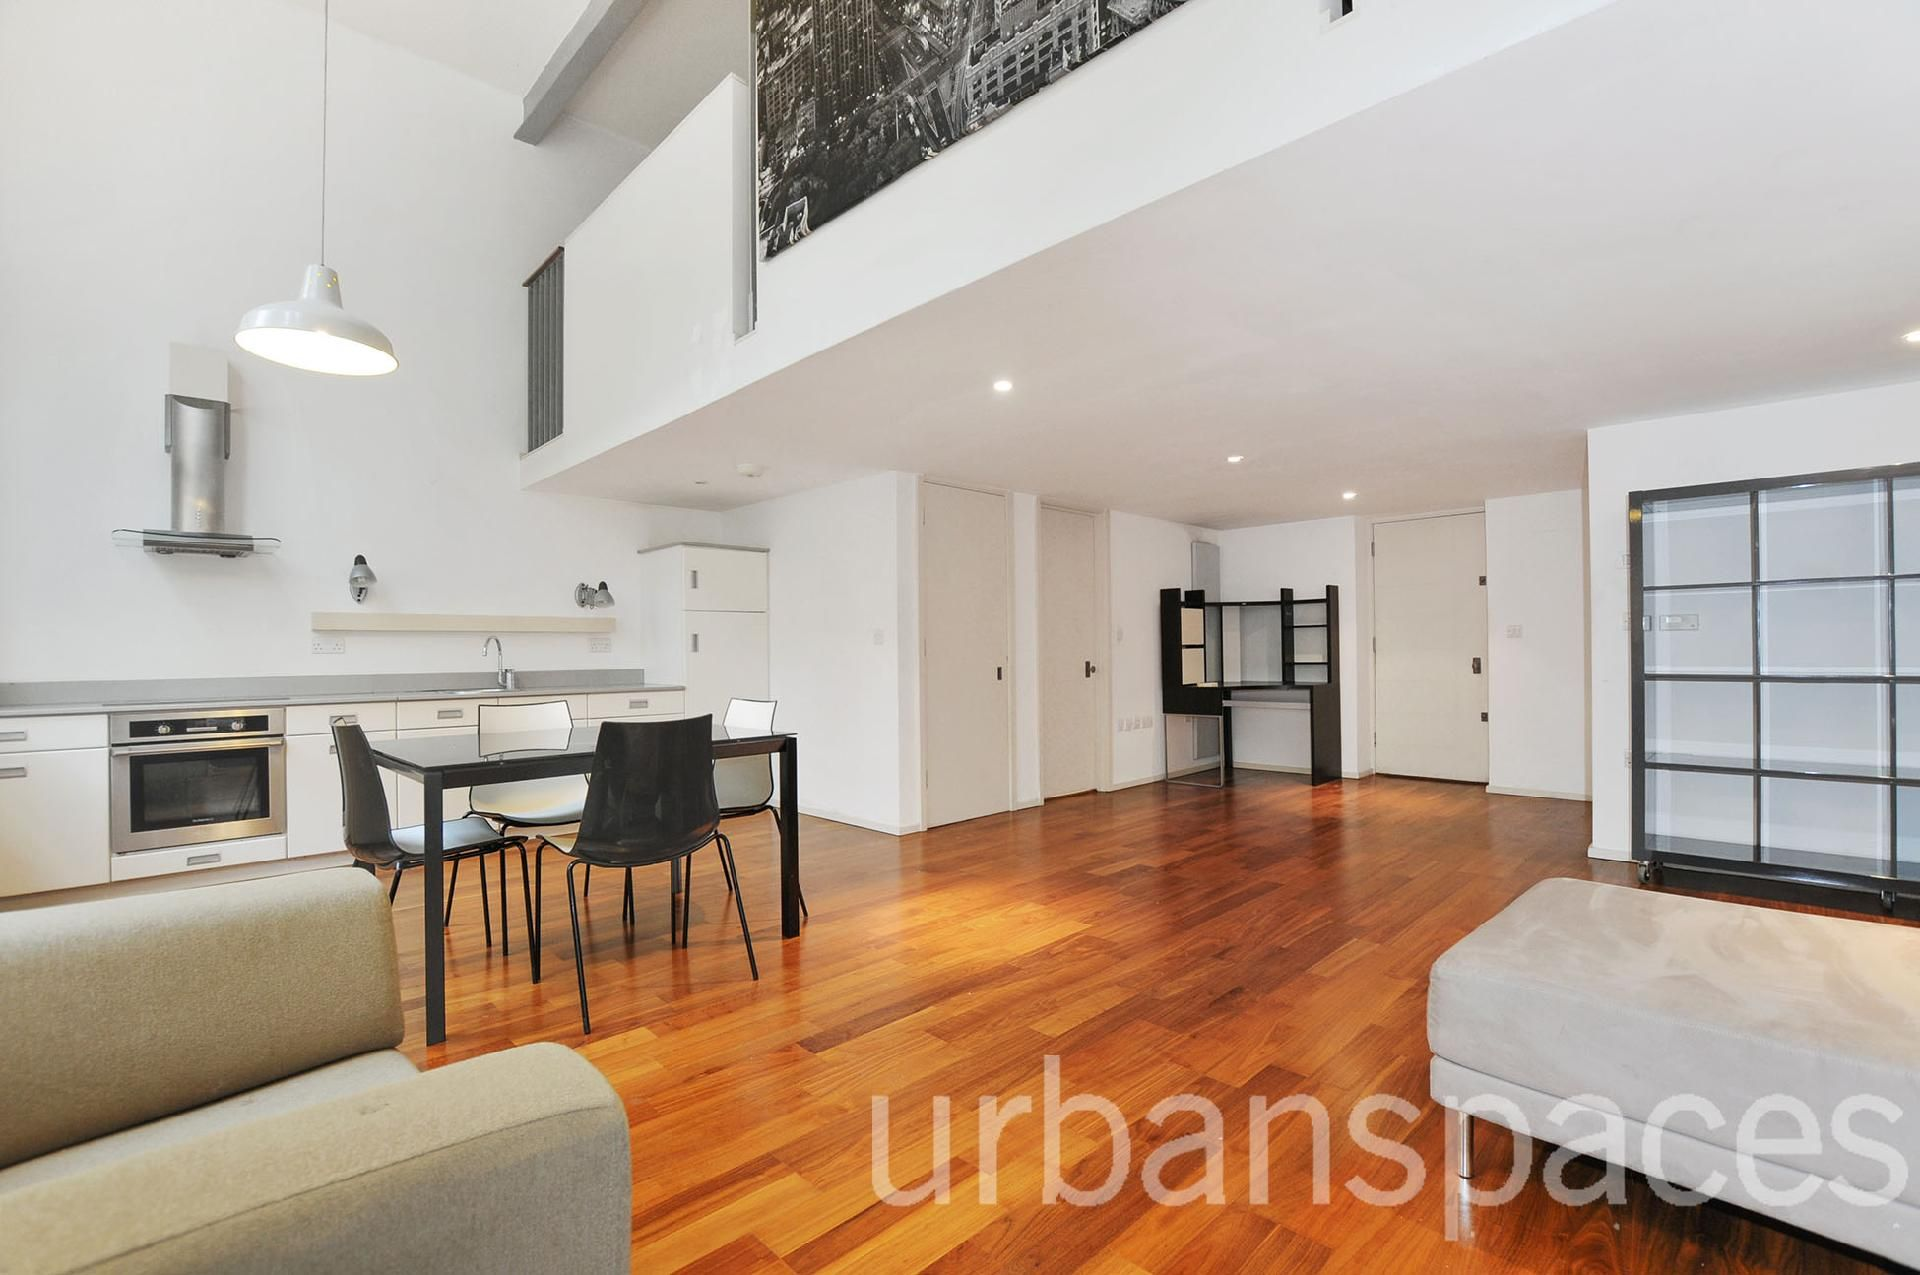 2 Bedroom Apartment To Rent On Stepney City Apartments 49 Clark Street London E1 Property Search G City Apartment Apartments For Rent 2 Bedroom Apartment